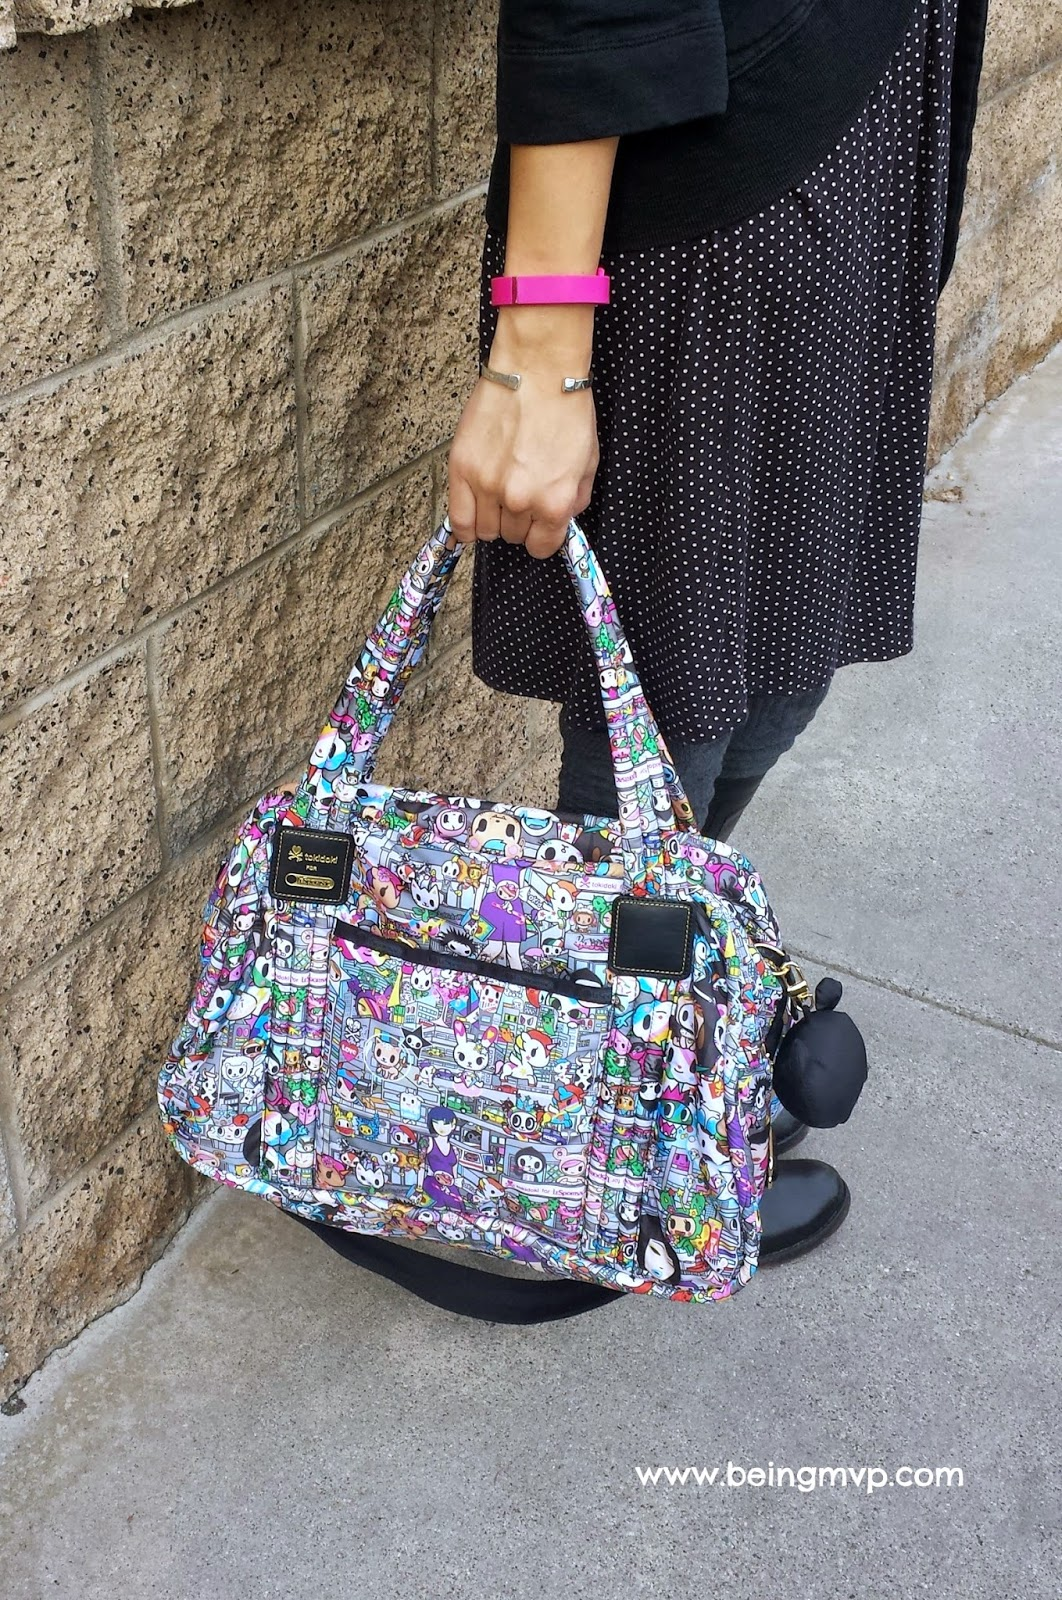 1dfa6d7faa Are you a fan of LeSportSac bags? What are some of your favorite prints?